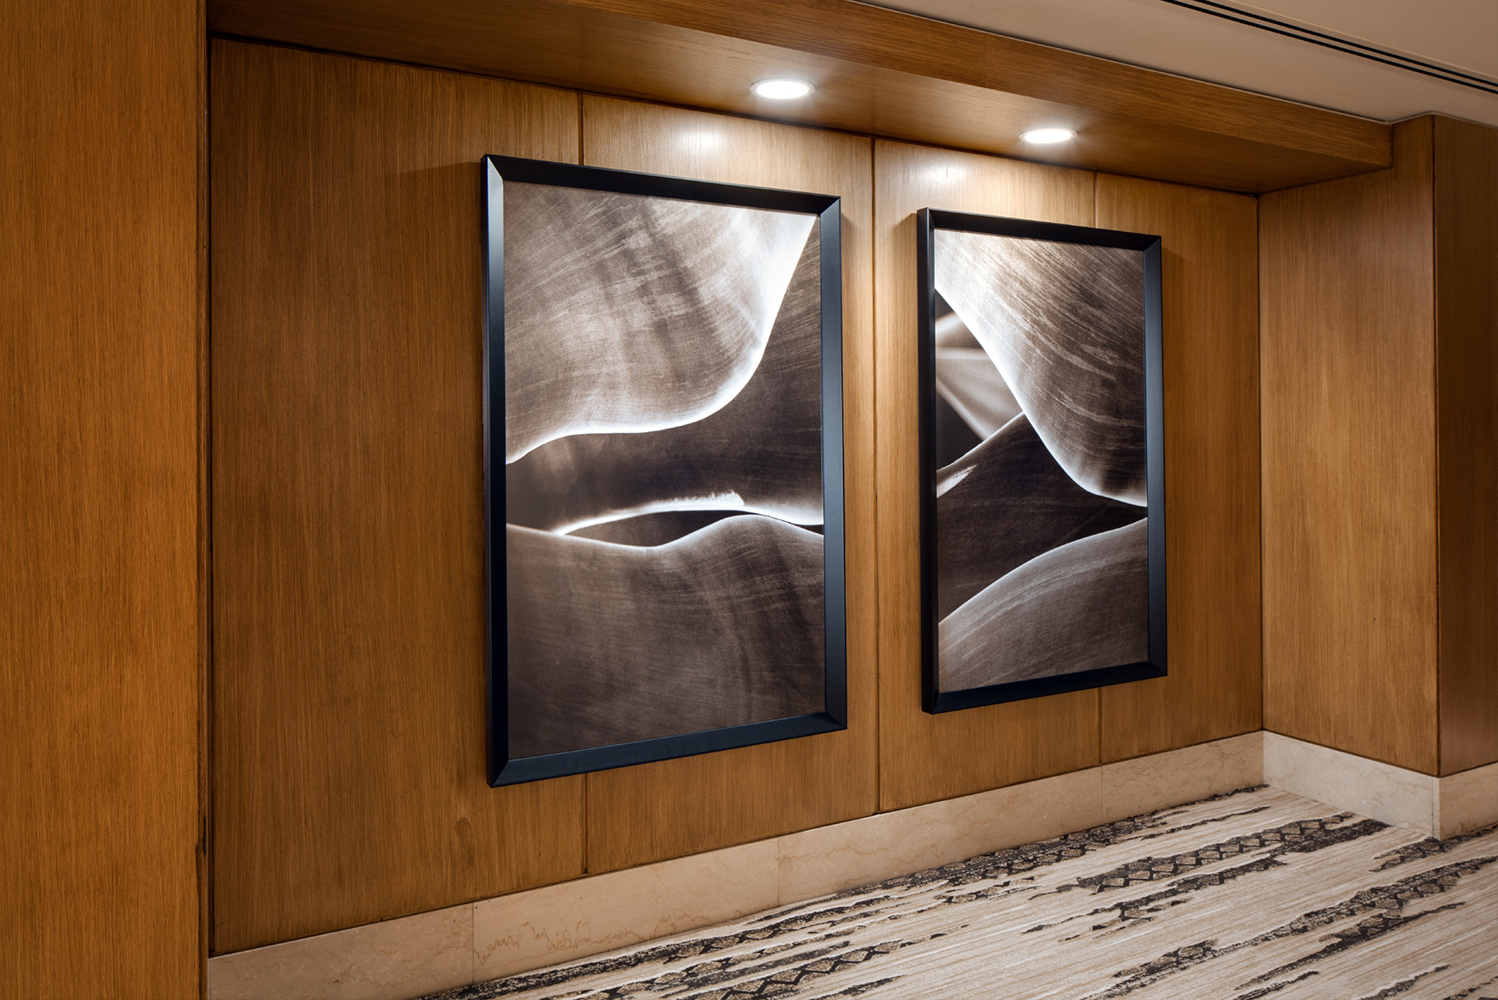 There are also wall-hung artwork with black and white strokes.